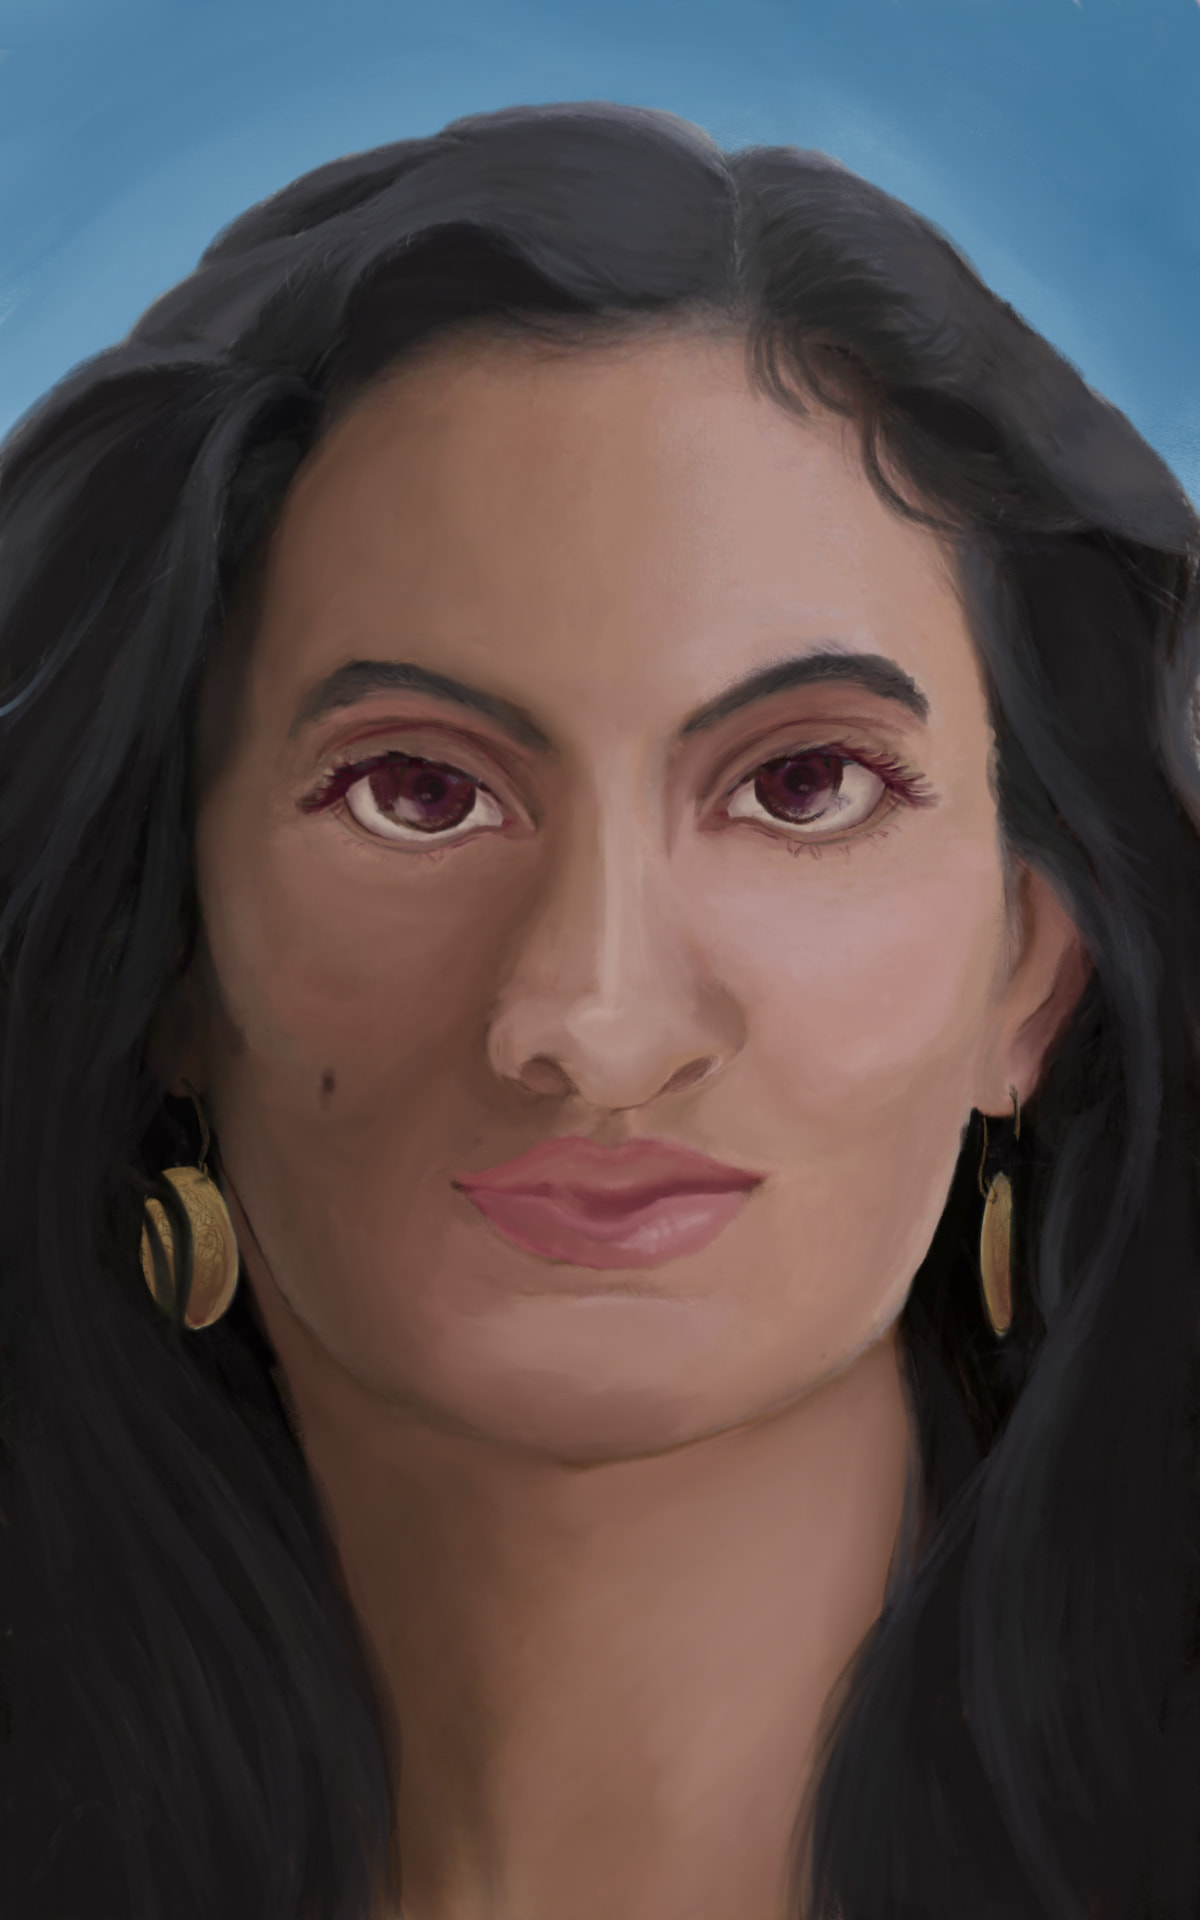 Facial approximation of skeletal remains from a Crusader-era burial site in Israel (Caesarea Maritima. Muslim burial, adult female who was buried with earrings (staining from the metal remained on the sides of the skull).